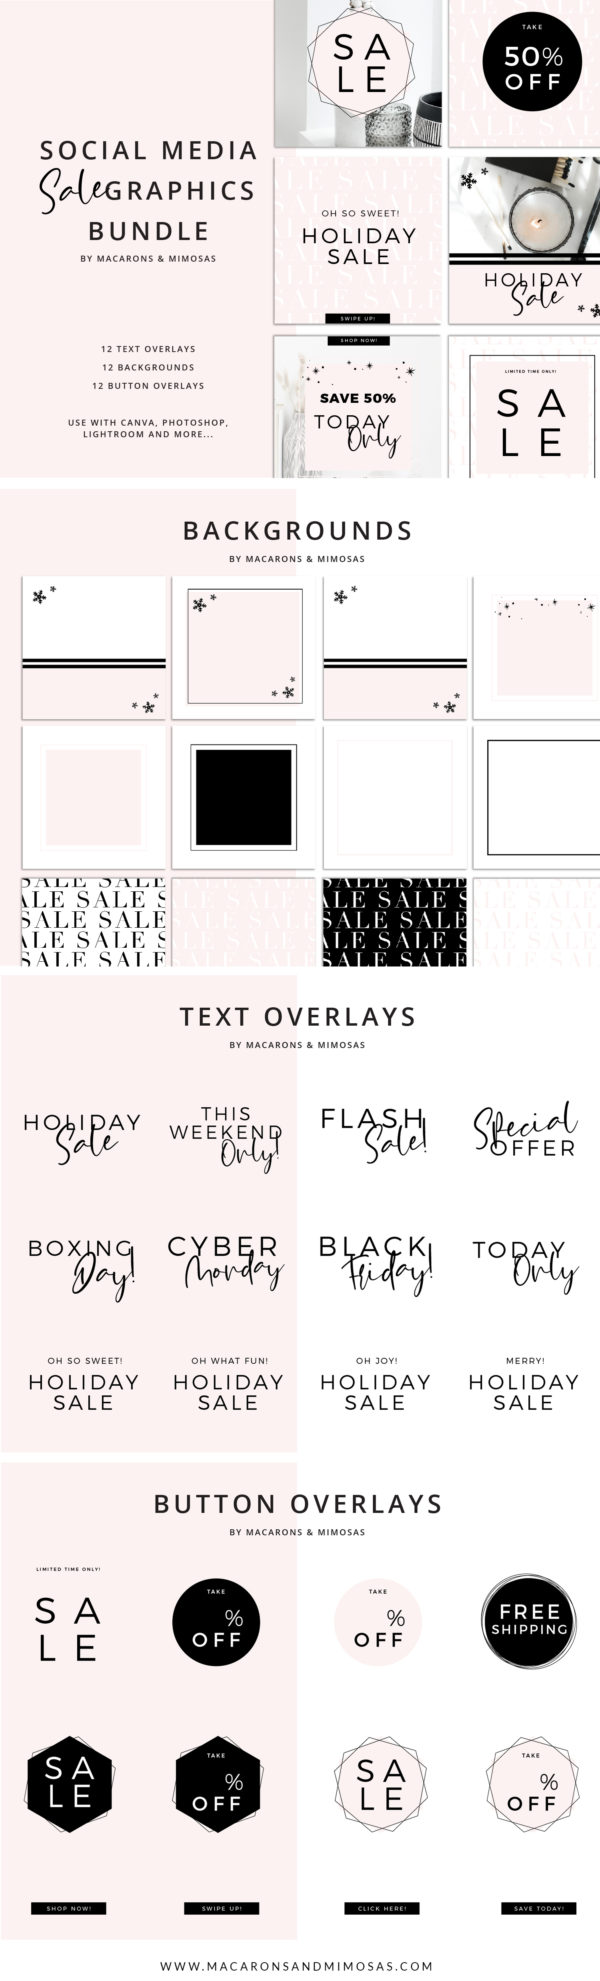 Sale Banners Instagram, Sale Post Graphics Instagram, Shop Graphics Instagram, Black Friday Graphic Instagram Template, Blush Pink Instagram Template